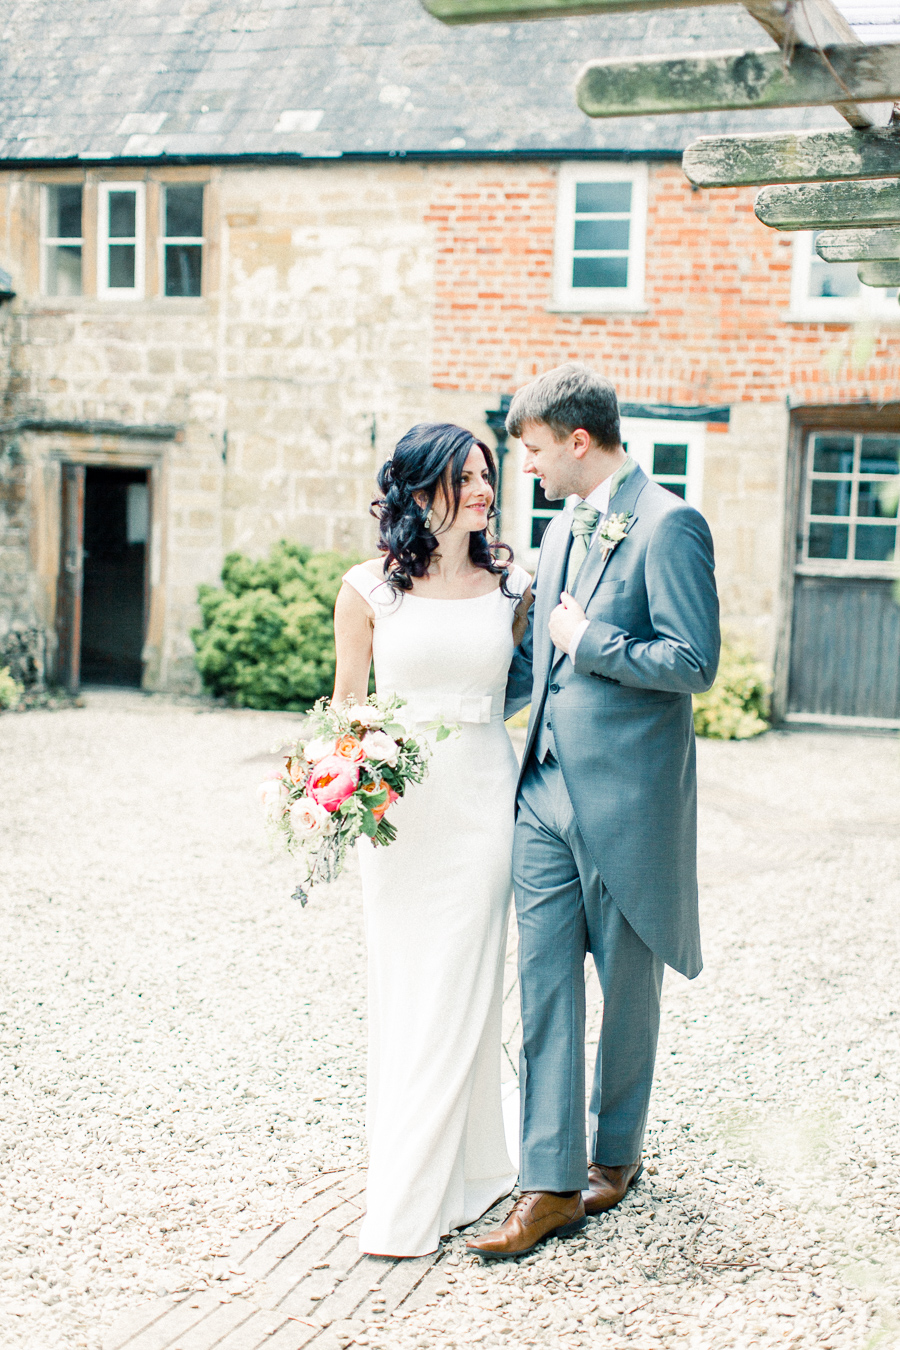 Jordans Courtyard rustic wedding styling ideas with images by Liz Baker Photography (34)